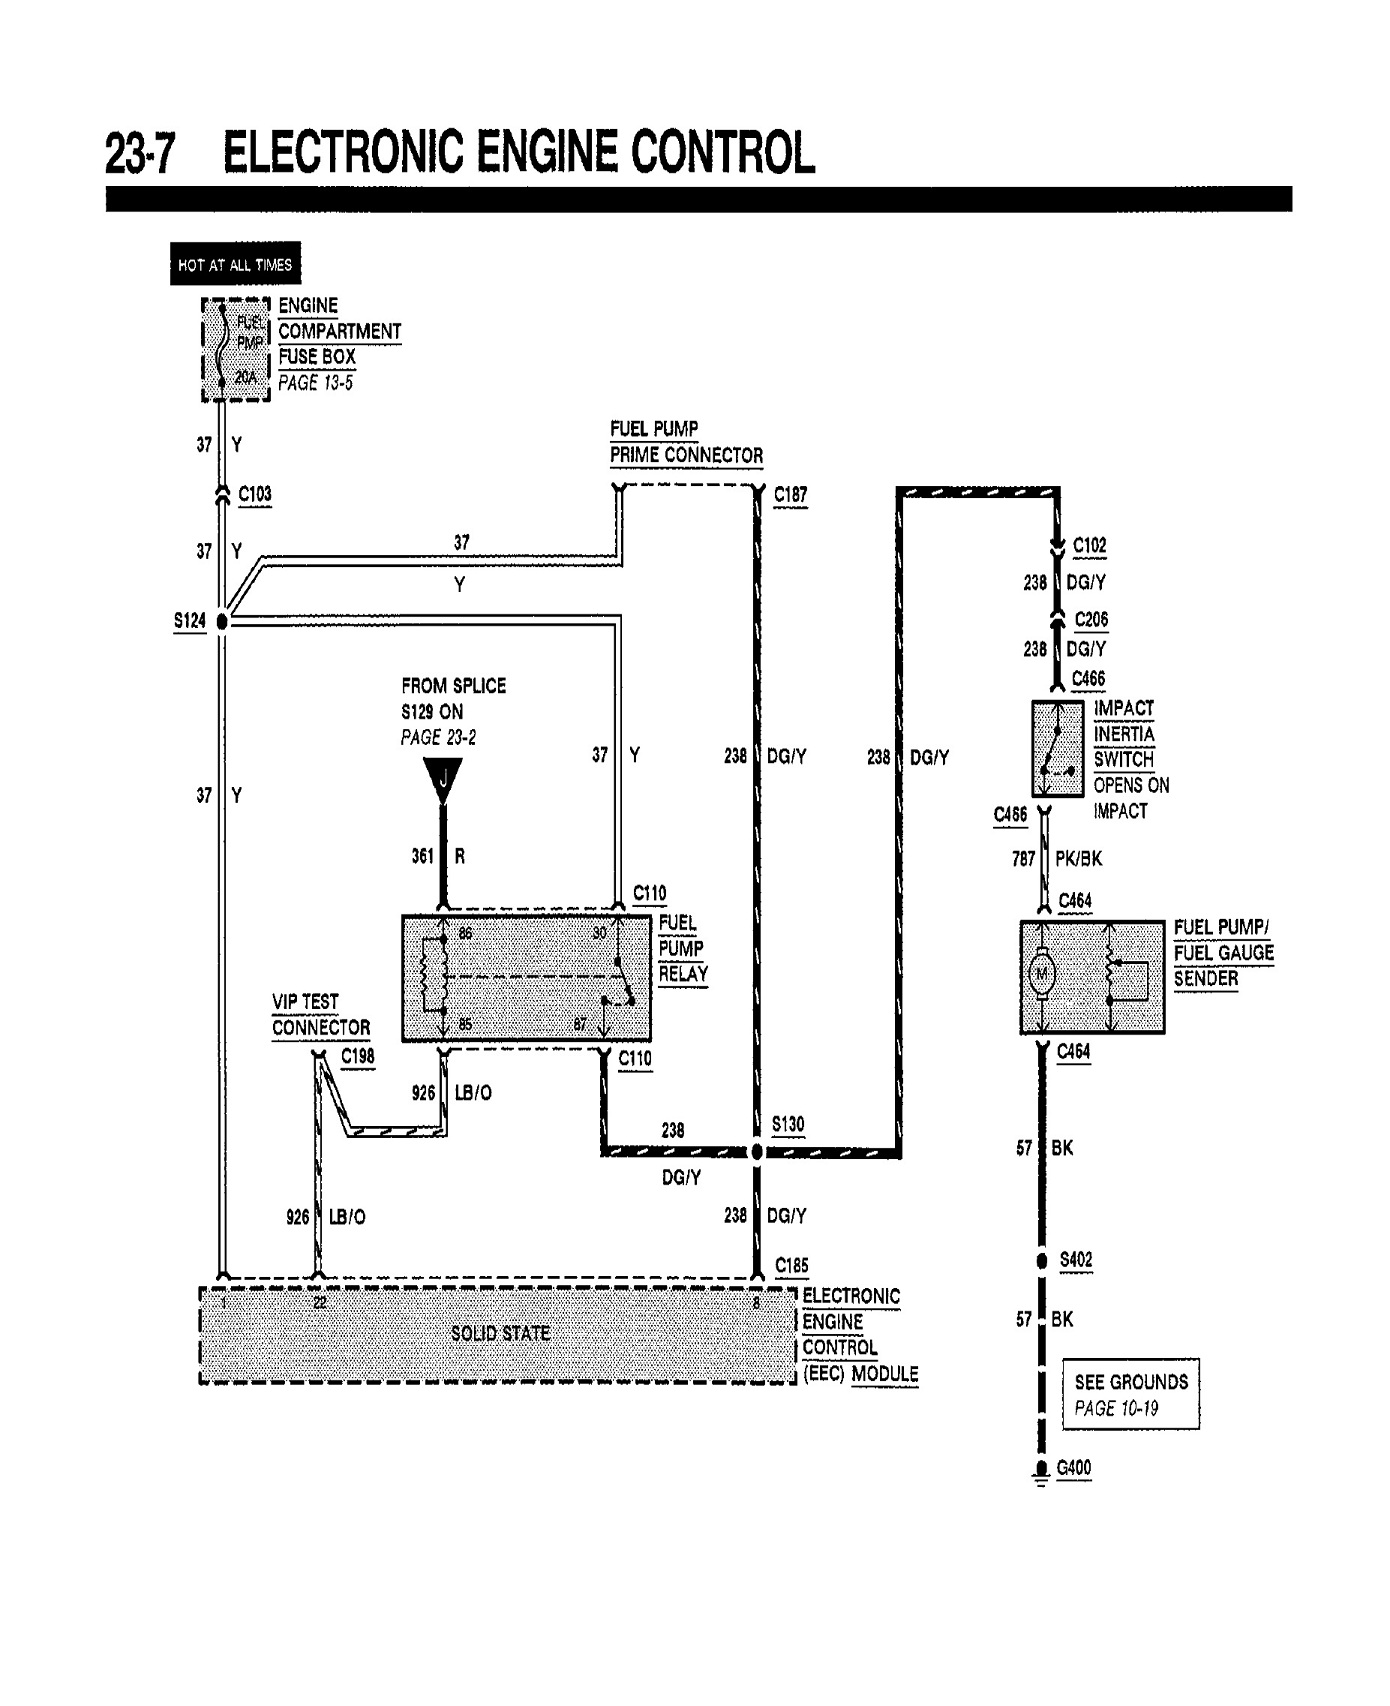 ... mercury grand marquis alternator wiring diagram Images Gallery. gm fuel  pump wiring diagram gm delphi fuel pump wiring